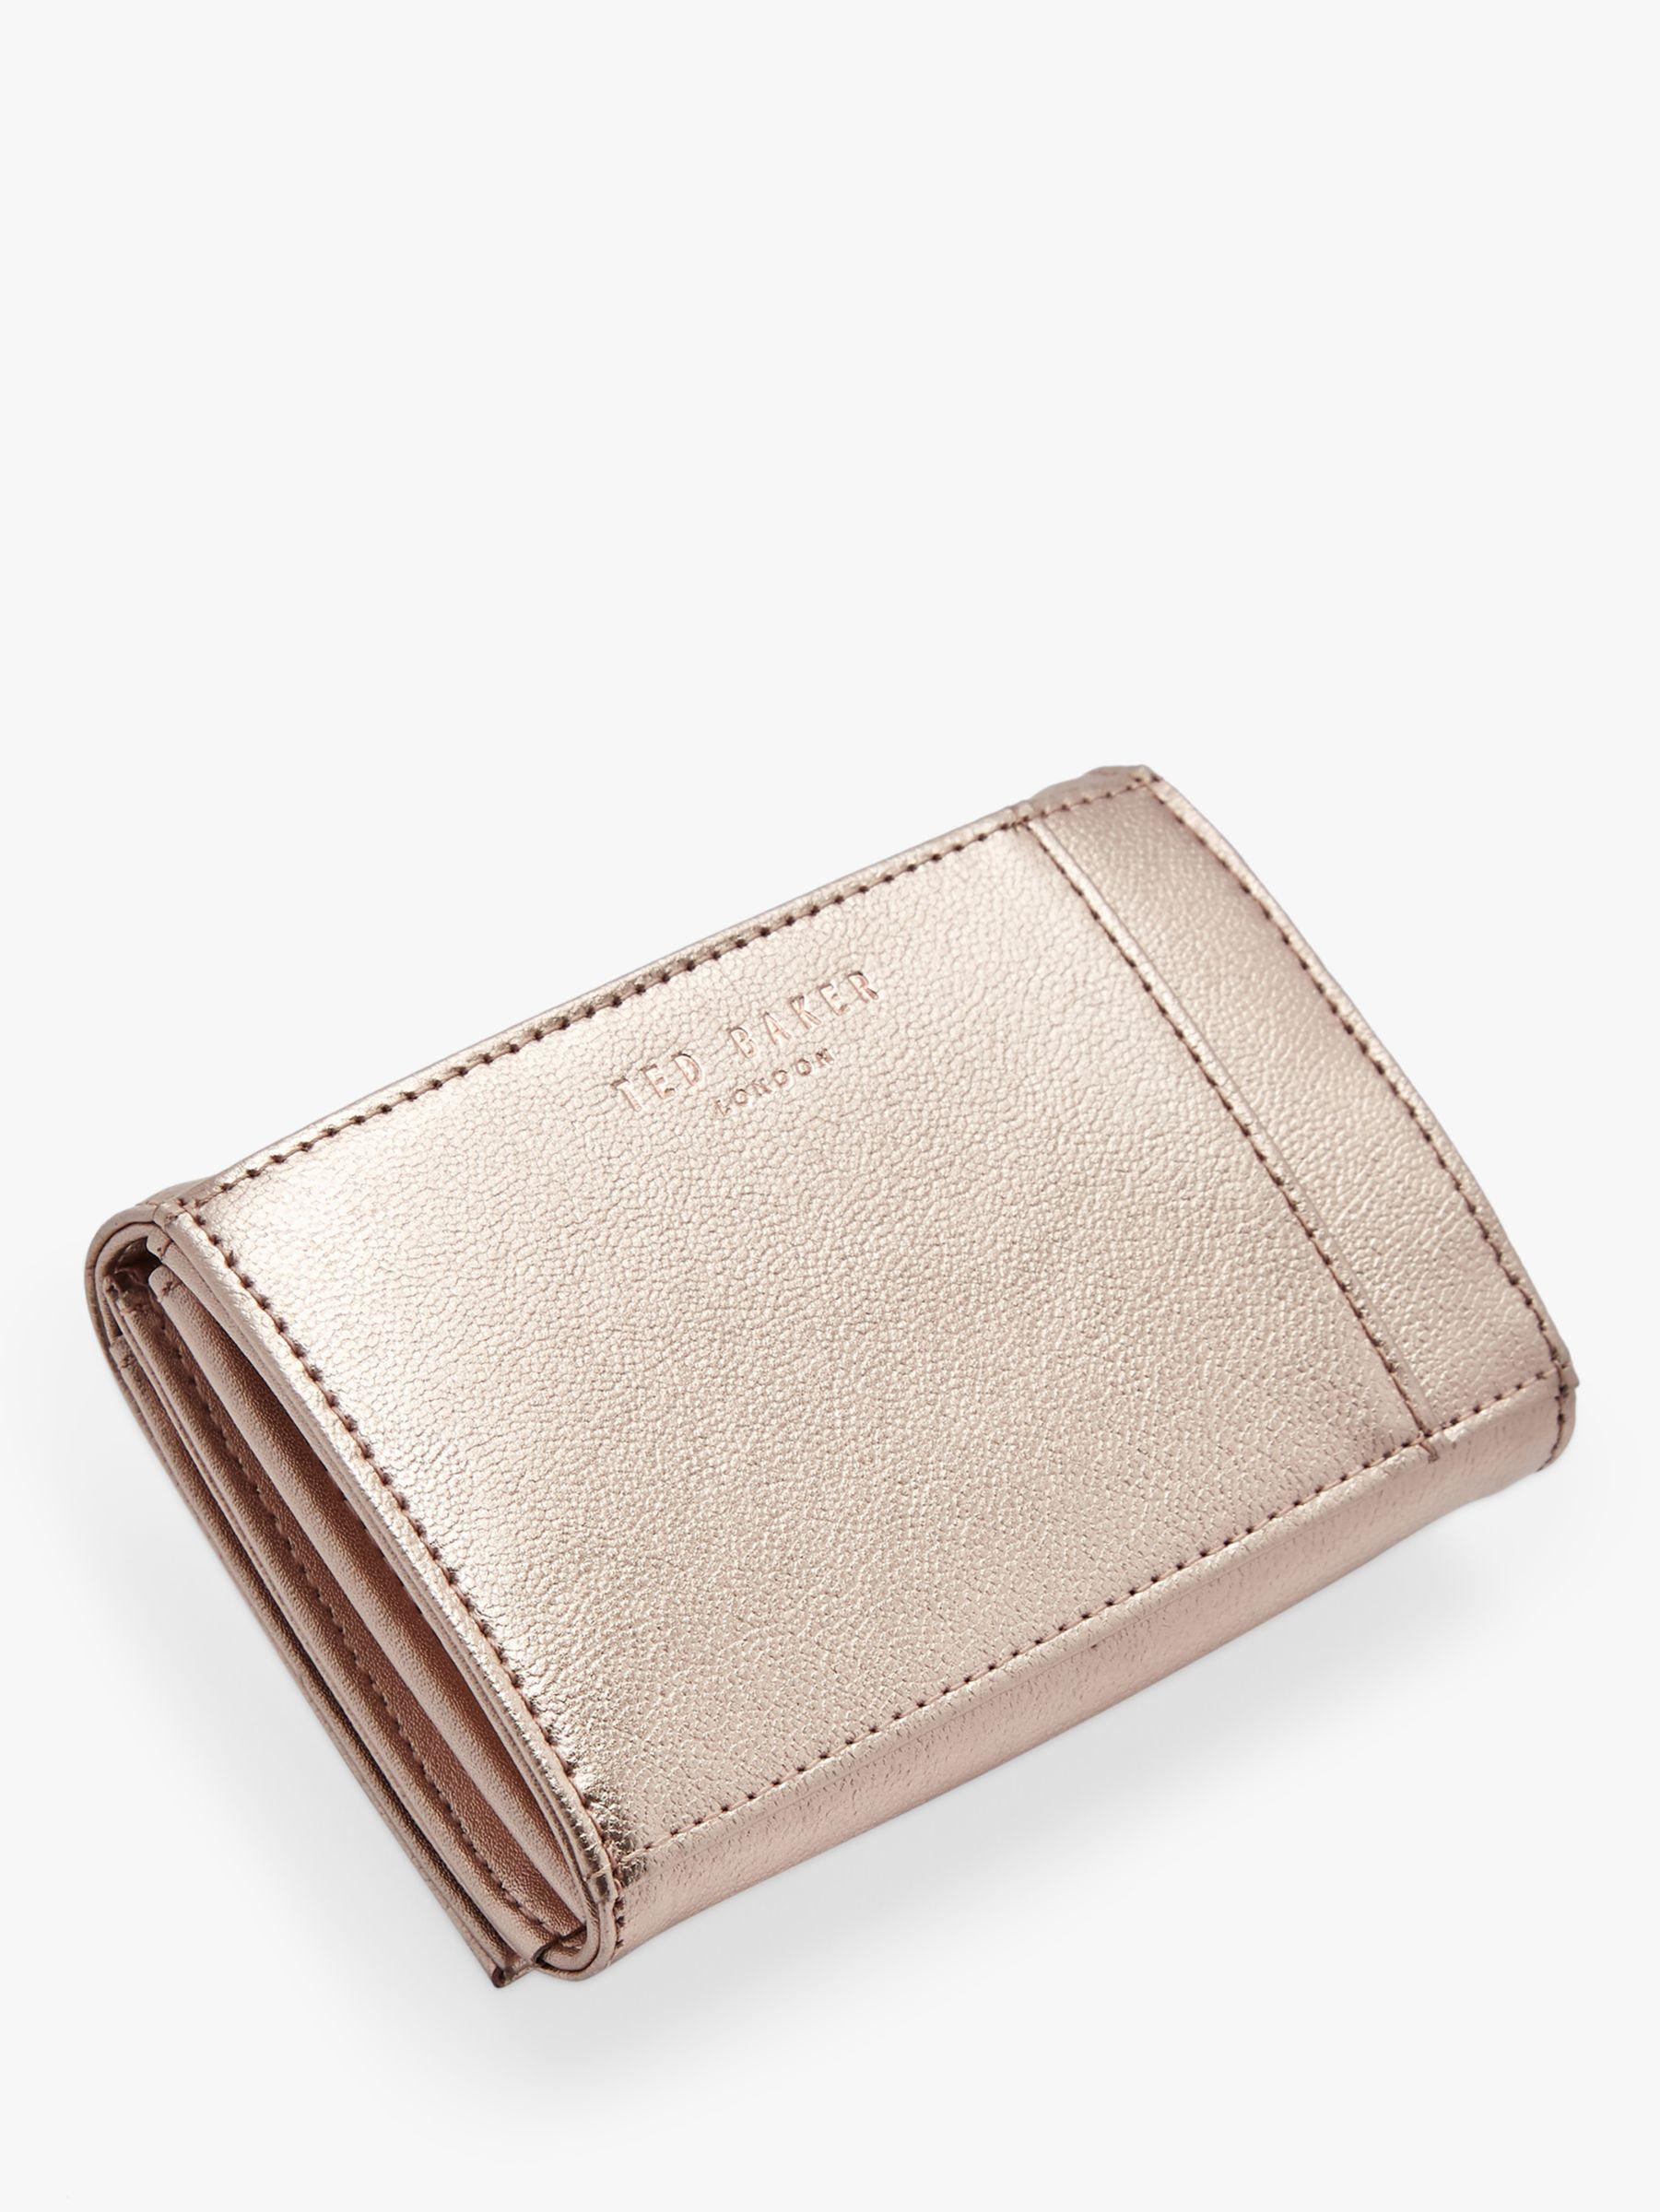 8af347a0400 Ted Baker Rana Flap Over Purse in Pink - Lyst